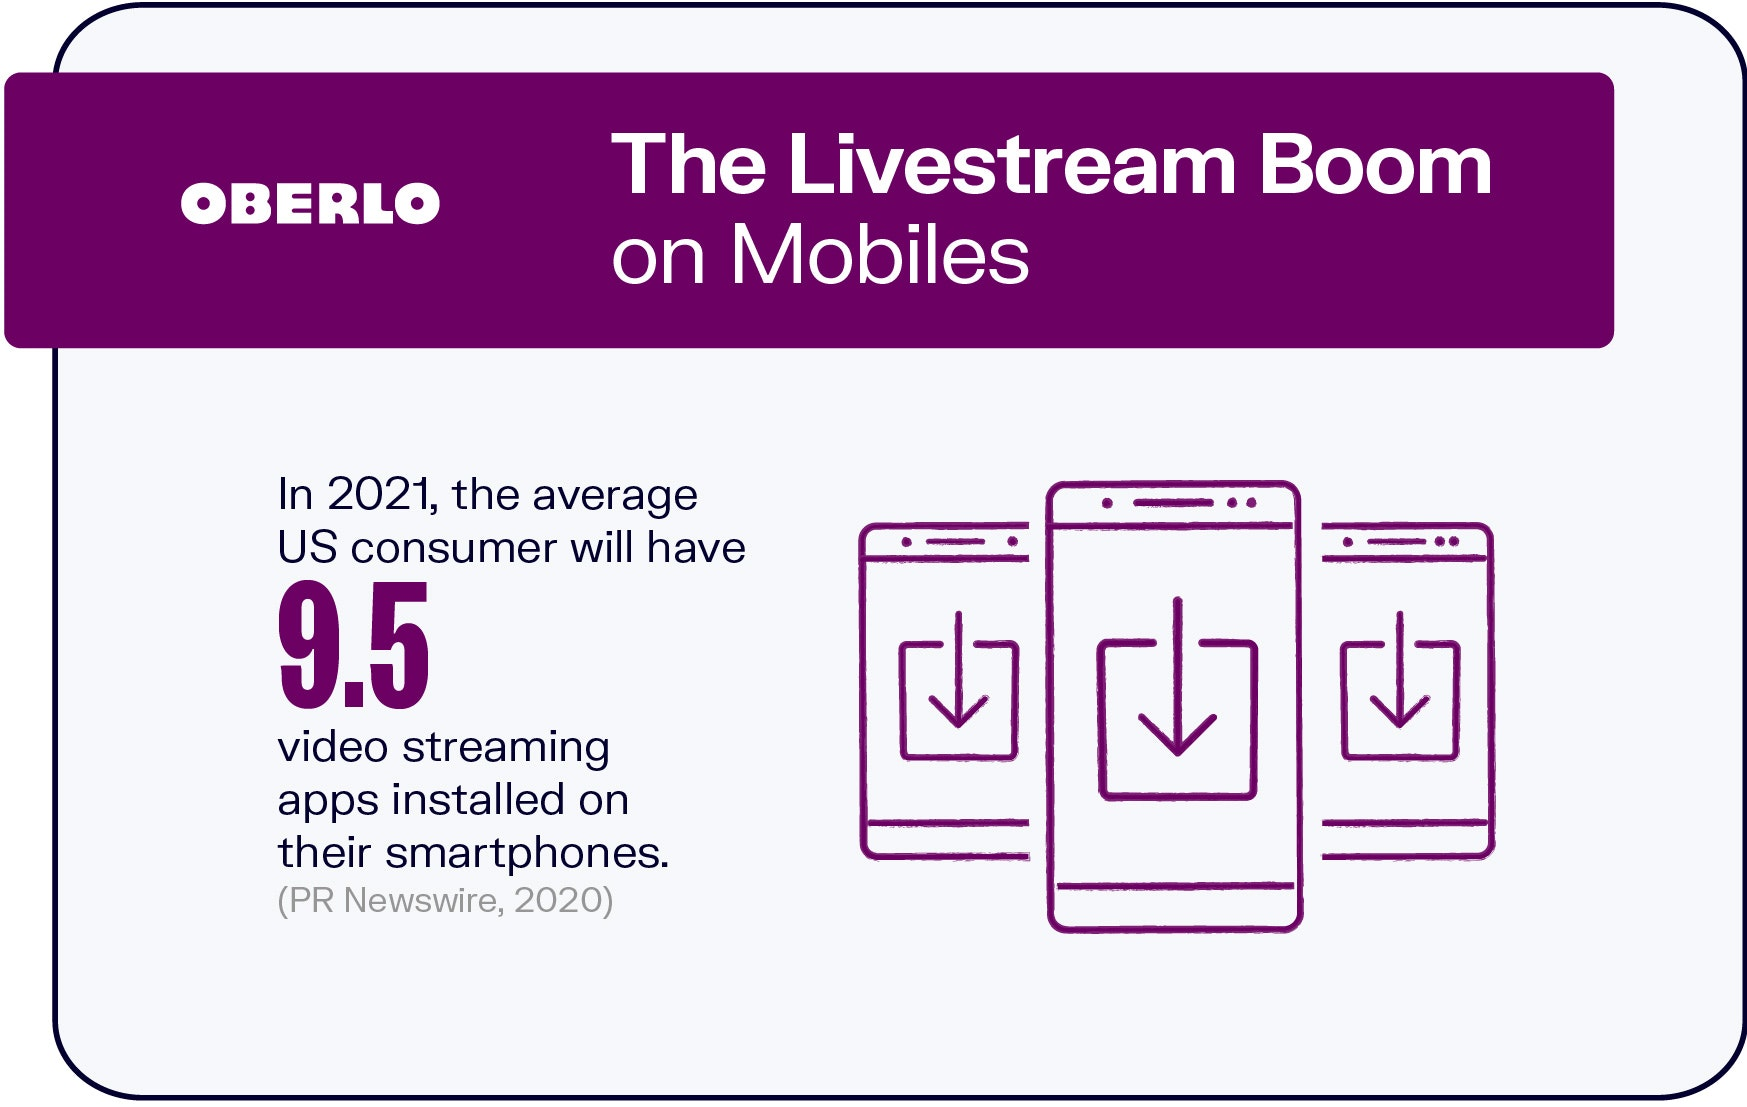 Livestream boom on Mobile